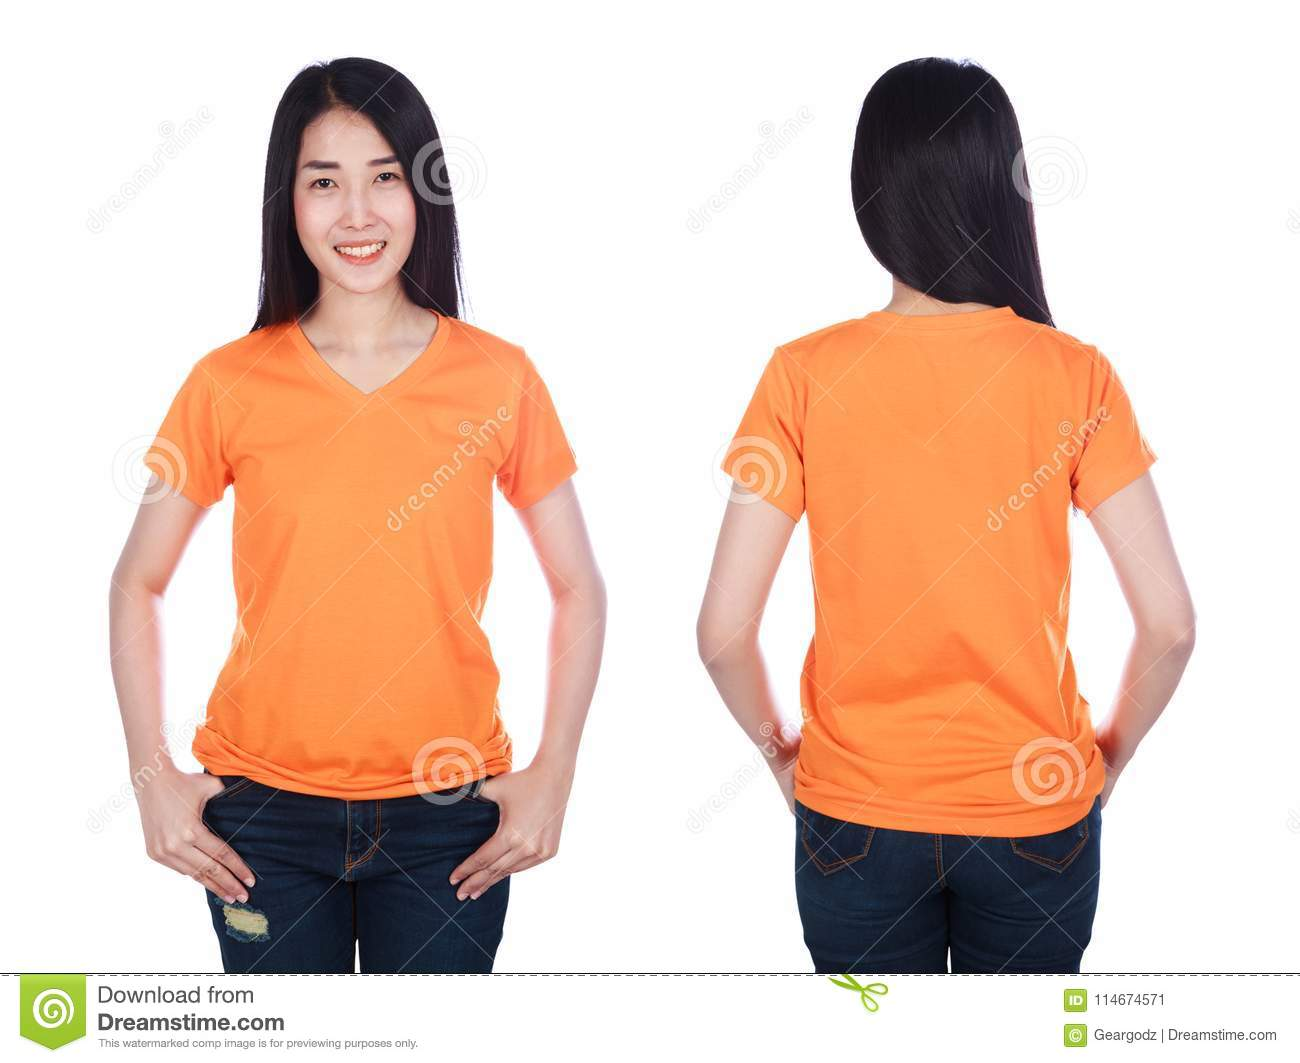 e08b03114 Woman In T-shirt Isolated On White Background Stock Image - Image of ...